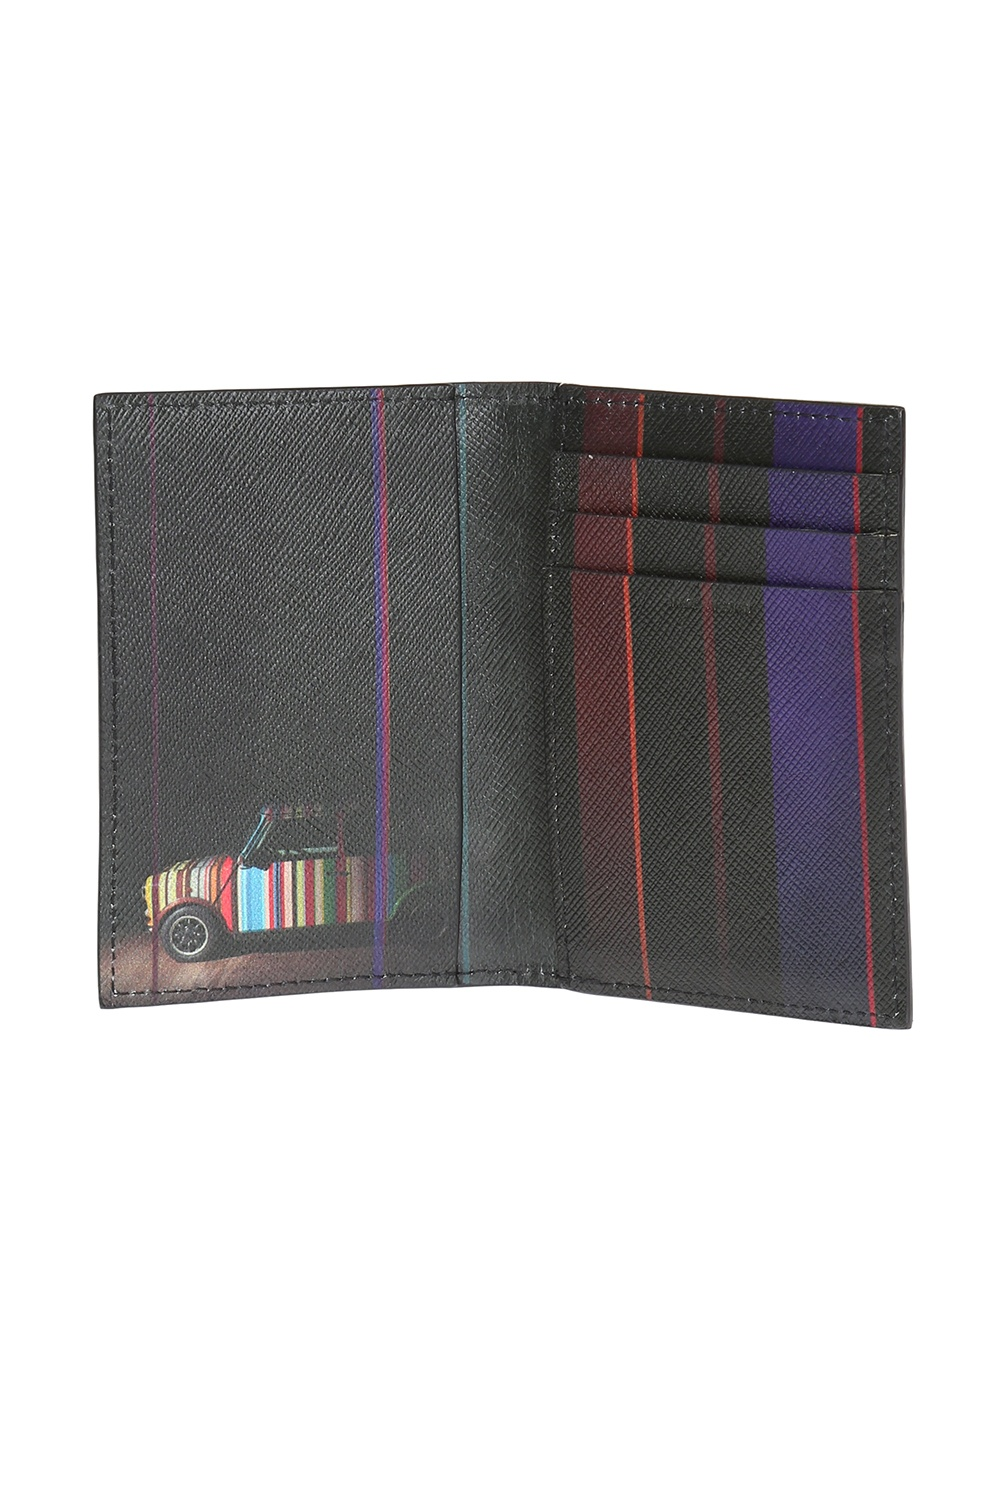 Paul Smith Leather bi-fold card case